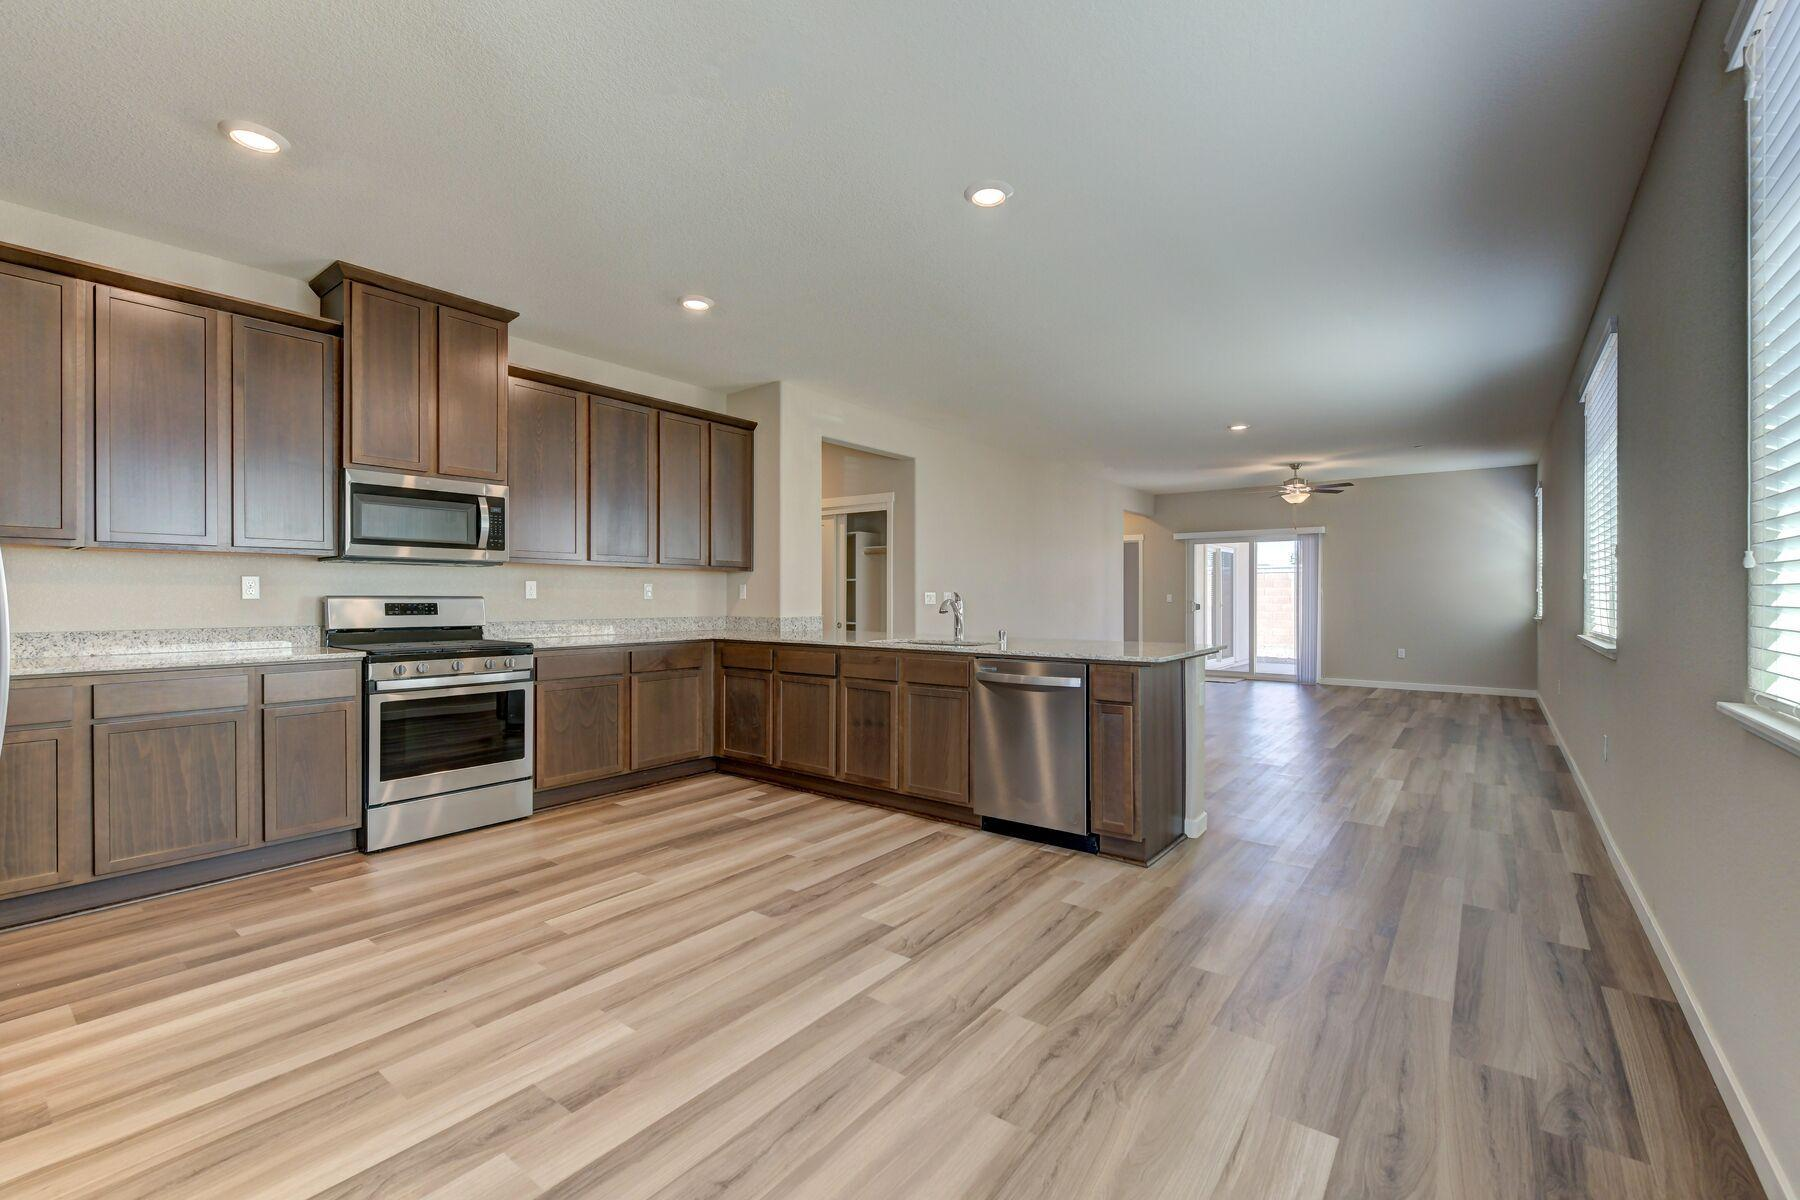 Kitchen featured in the Penny By LGI Homes in Vallejo-Napa, CA